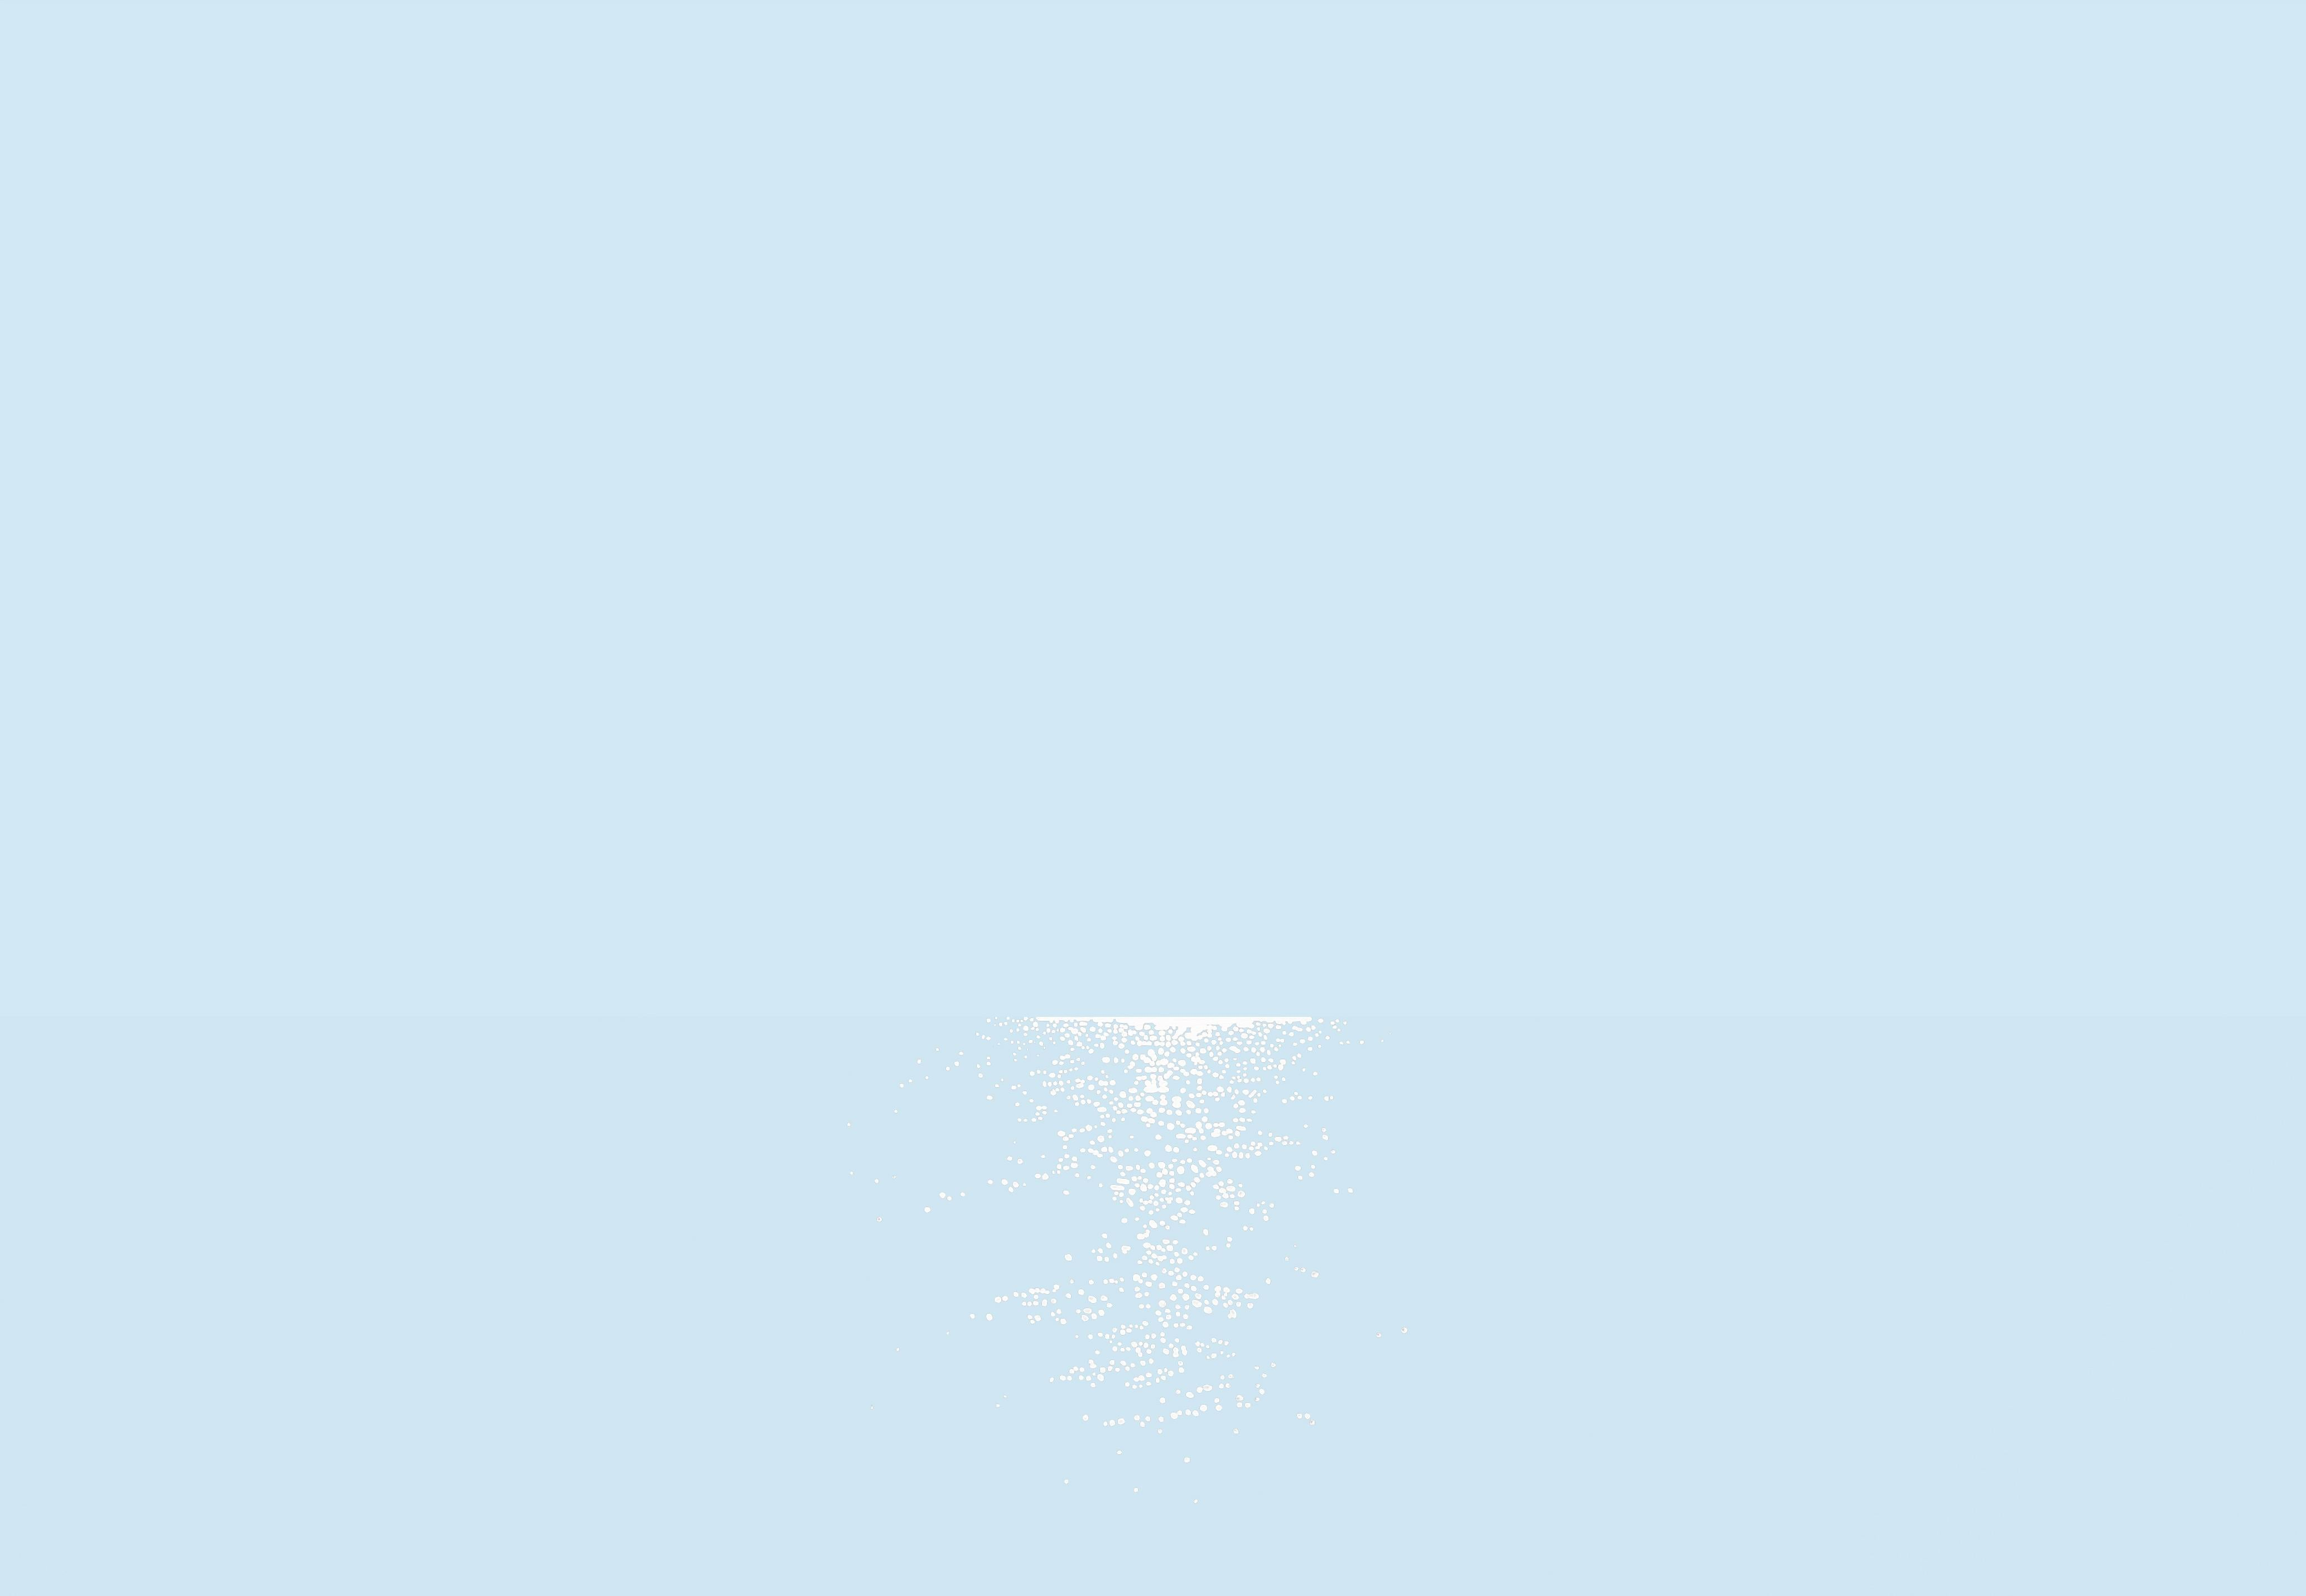 Light 5 July 04:23, Modern Landscape Painting, Minimalistic, Abstract, Sea View